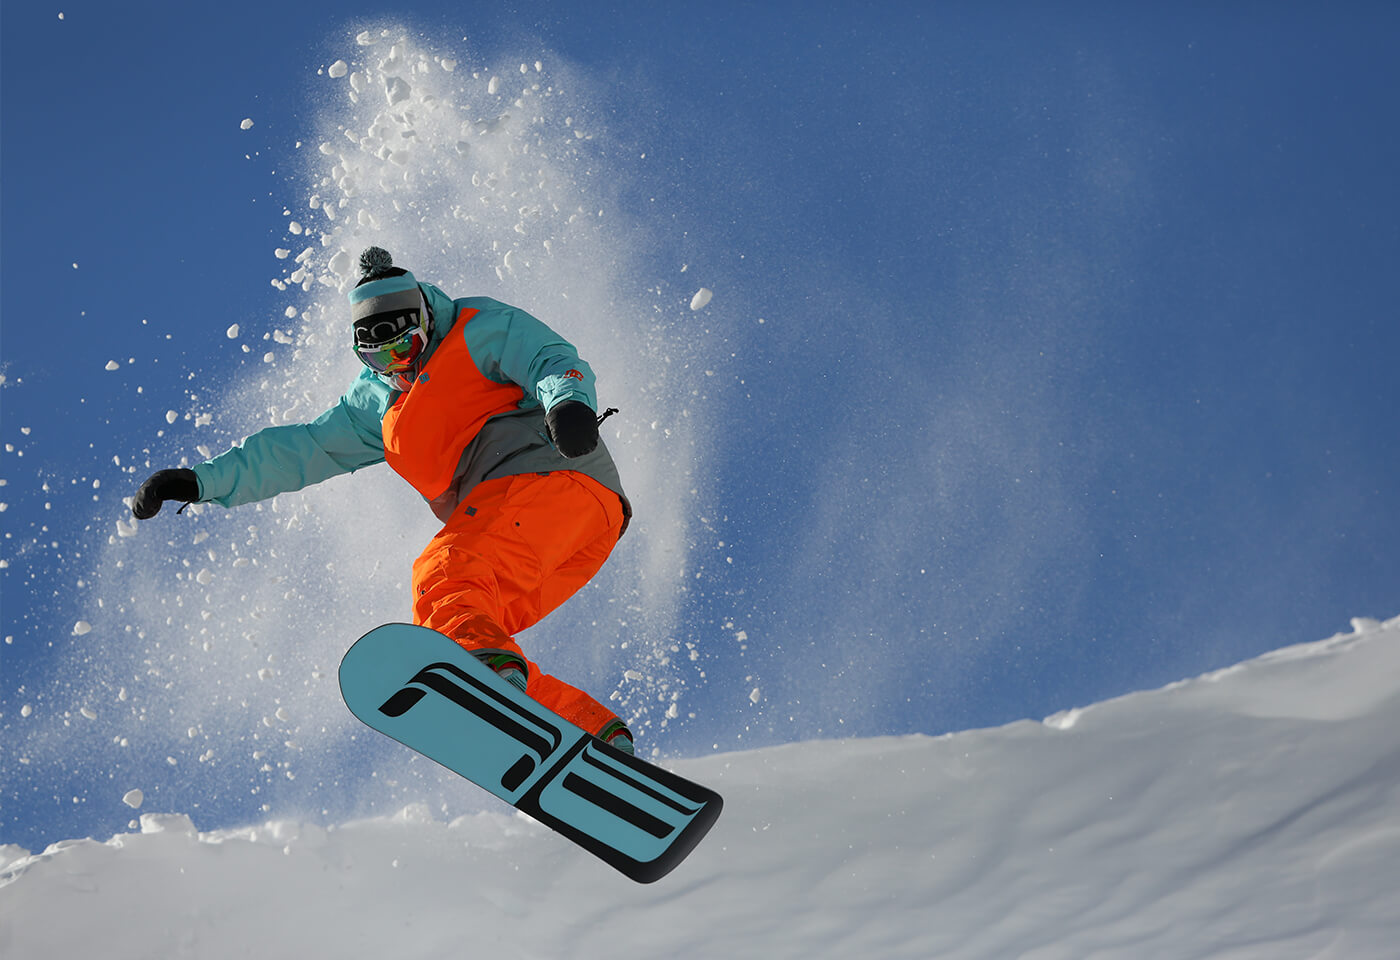 Snowboarder on mountain